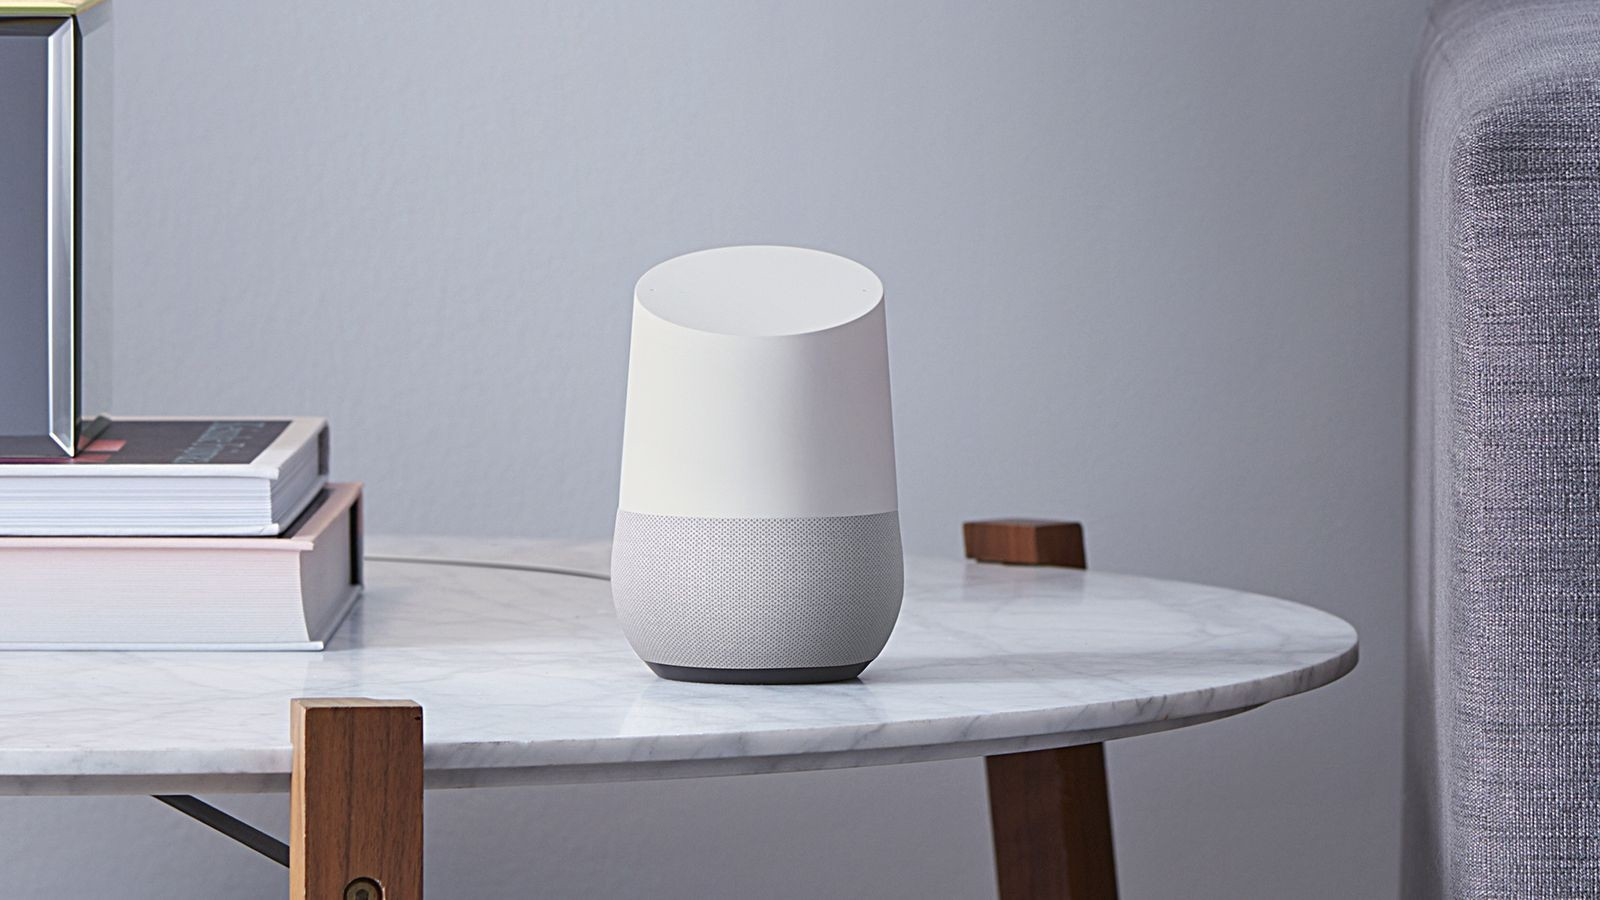 Why Google Home needs visual UIs – UX Collective